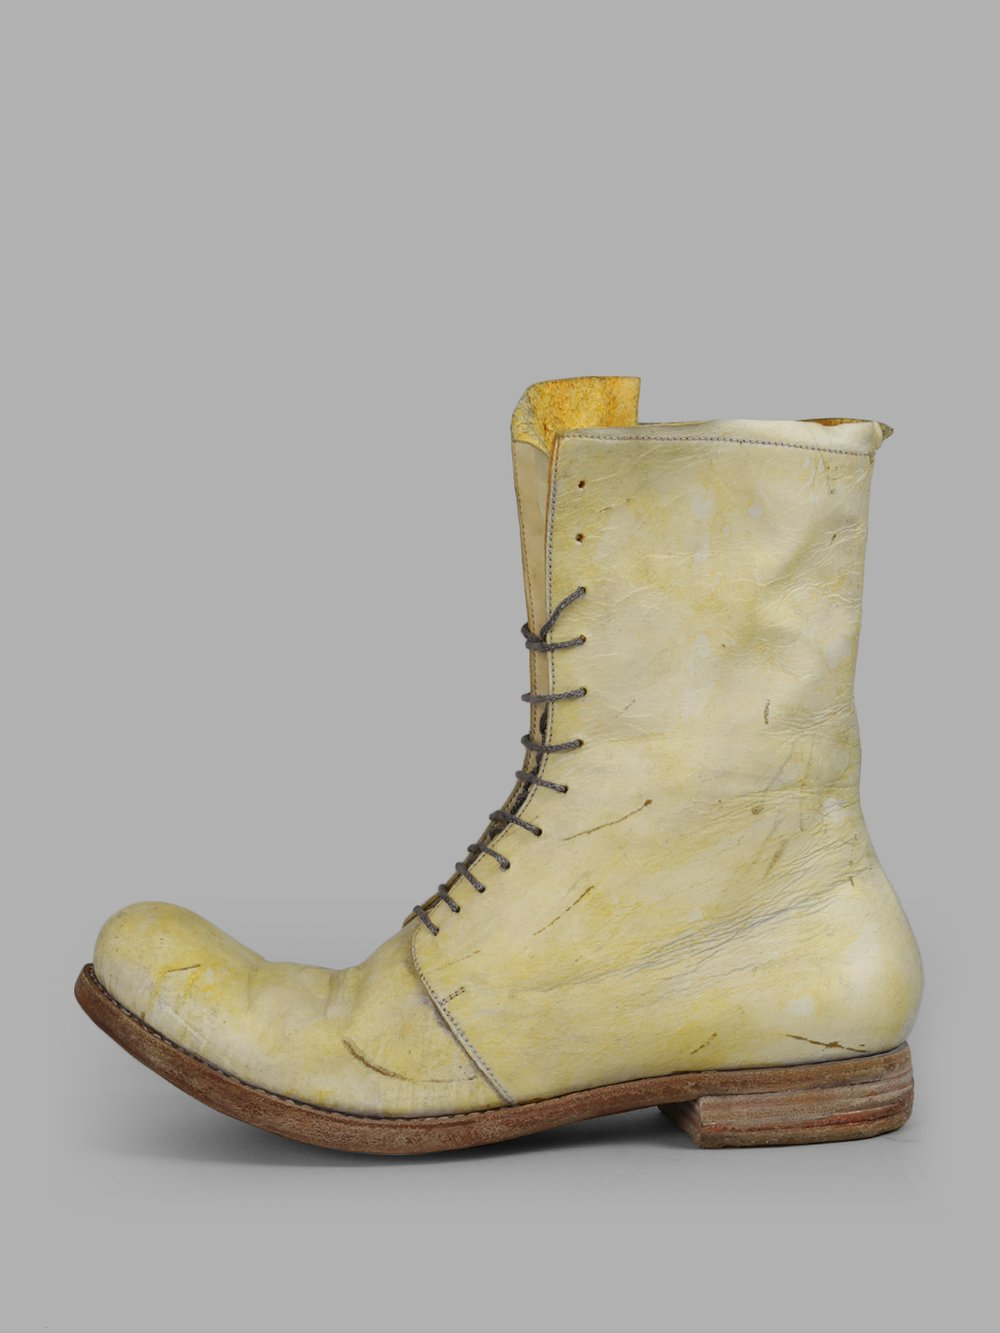 PALE YELLOW BOOTS